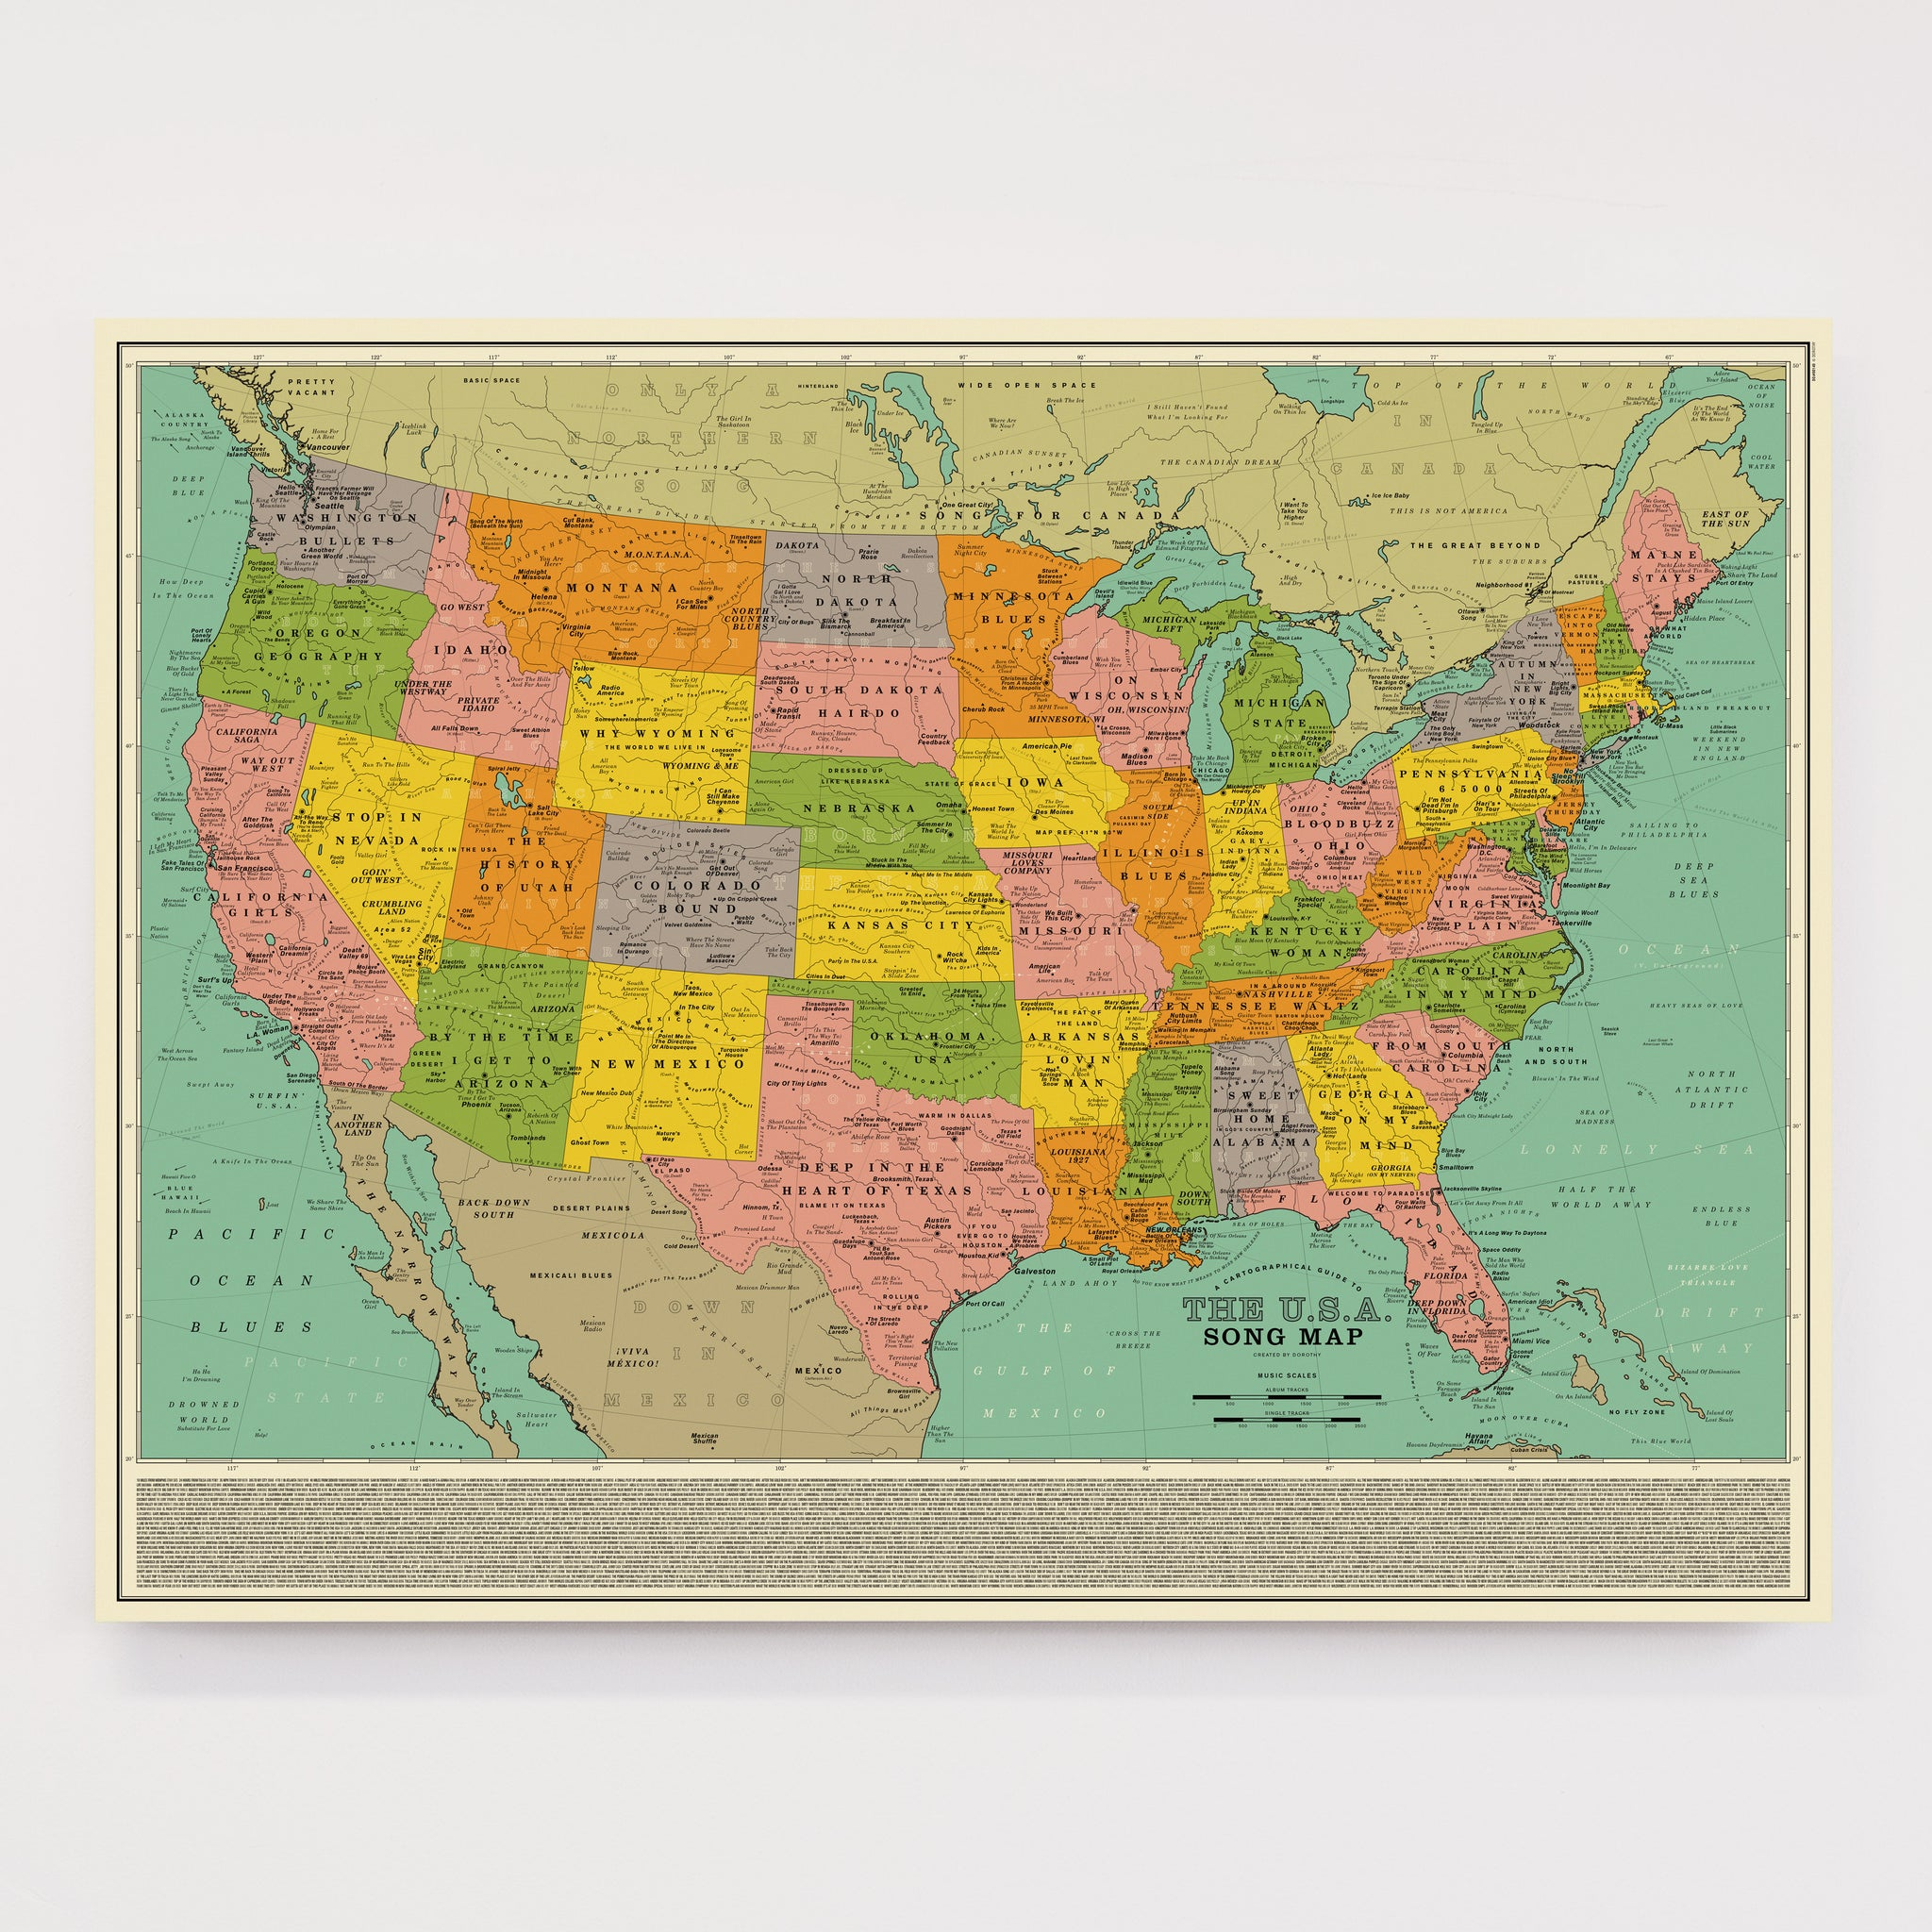 Map Of The United States Picture.U S A Song Map Open Edition Dorothy